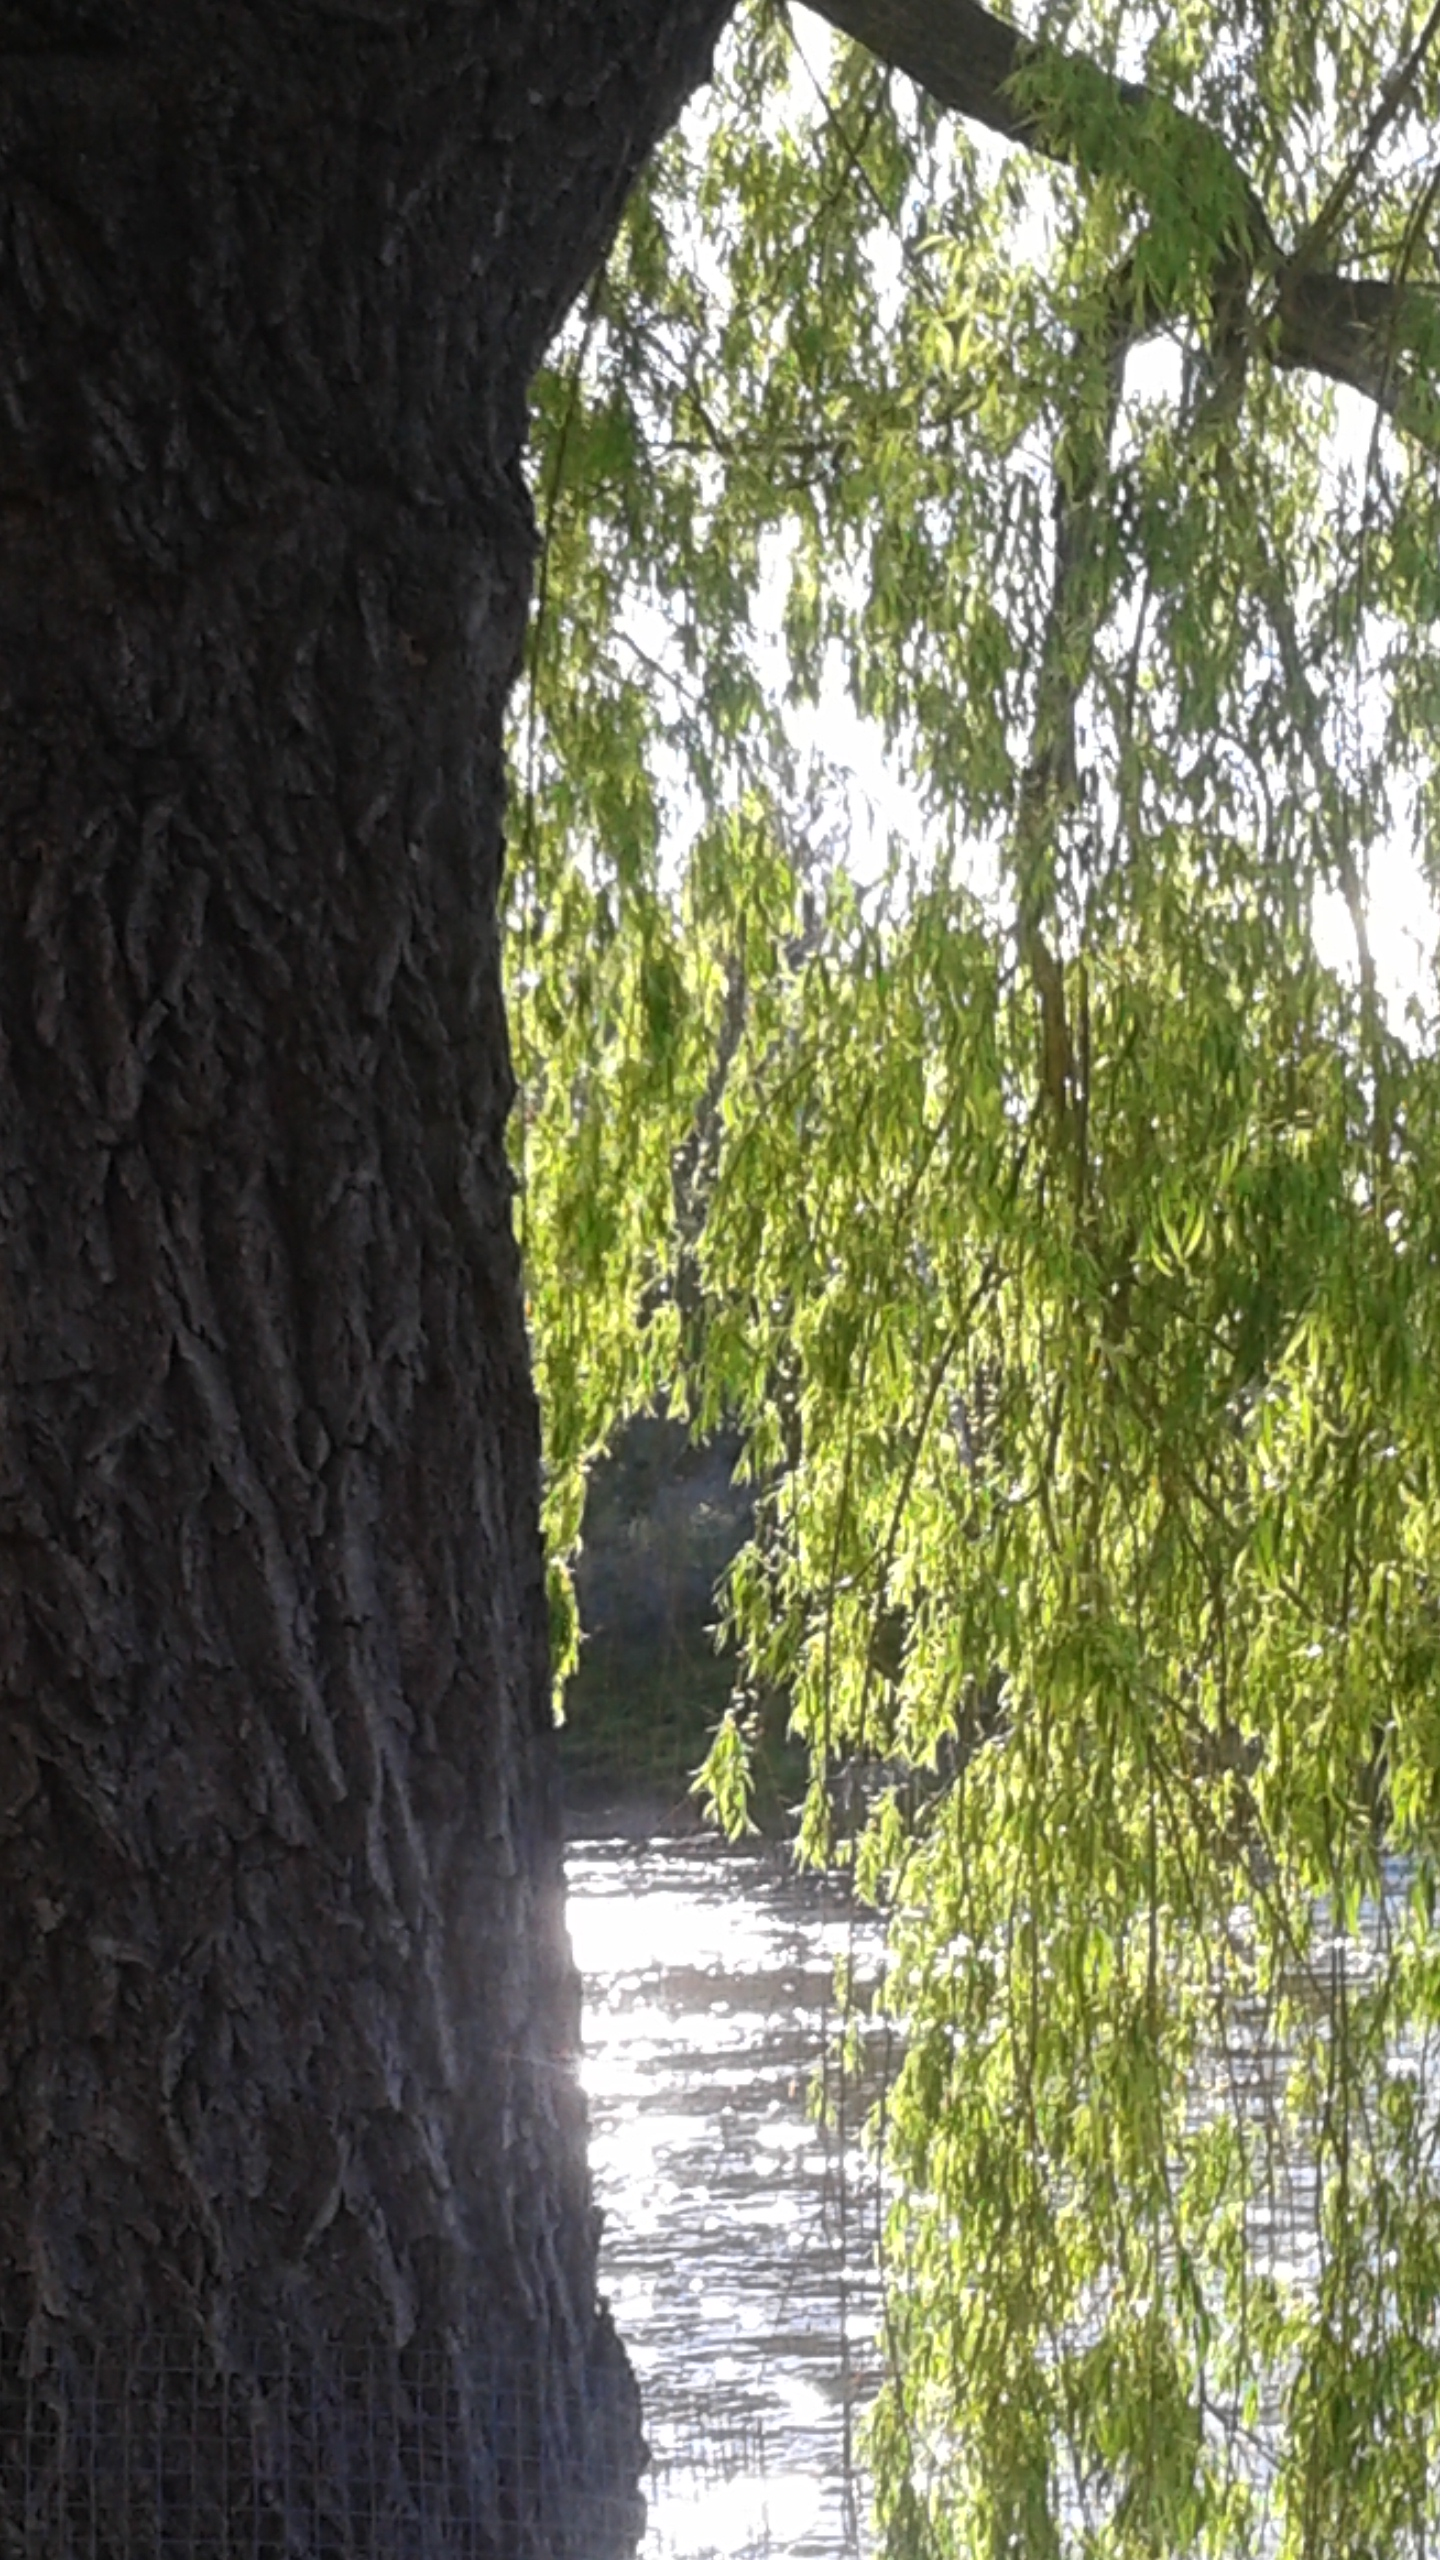 My favorite tree! A Willow tree hanging over the Deschutes.